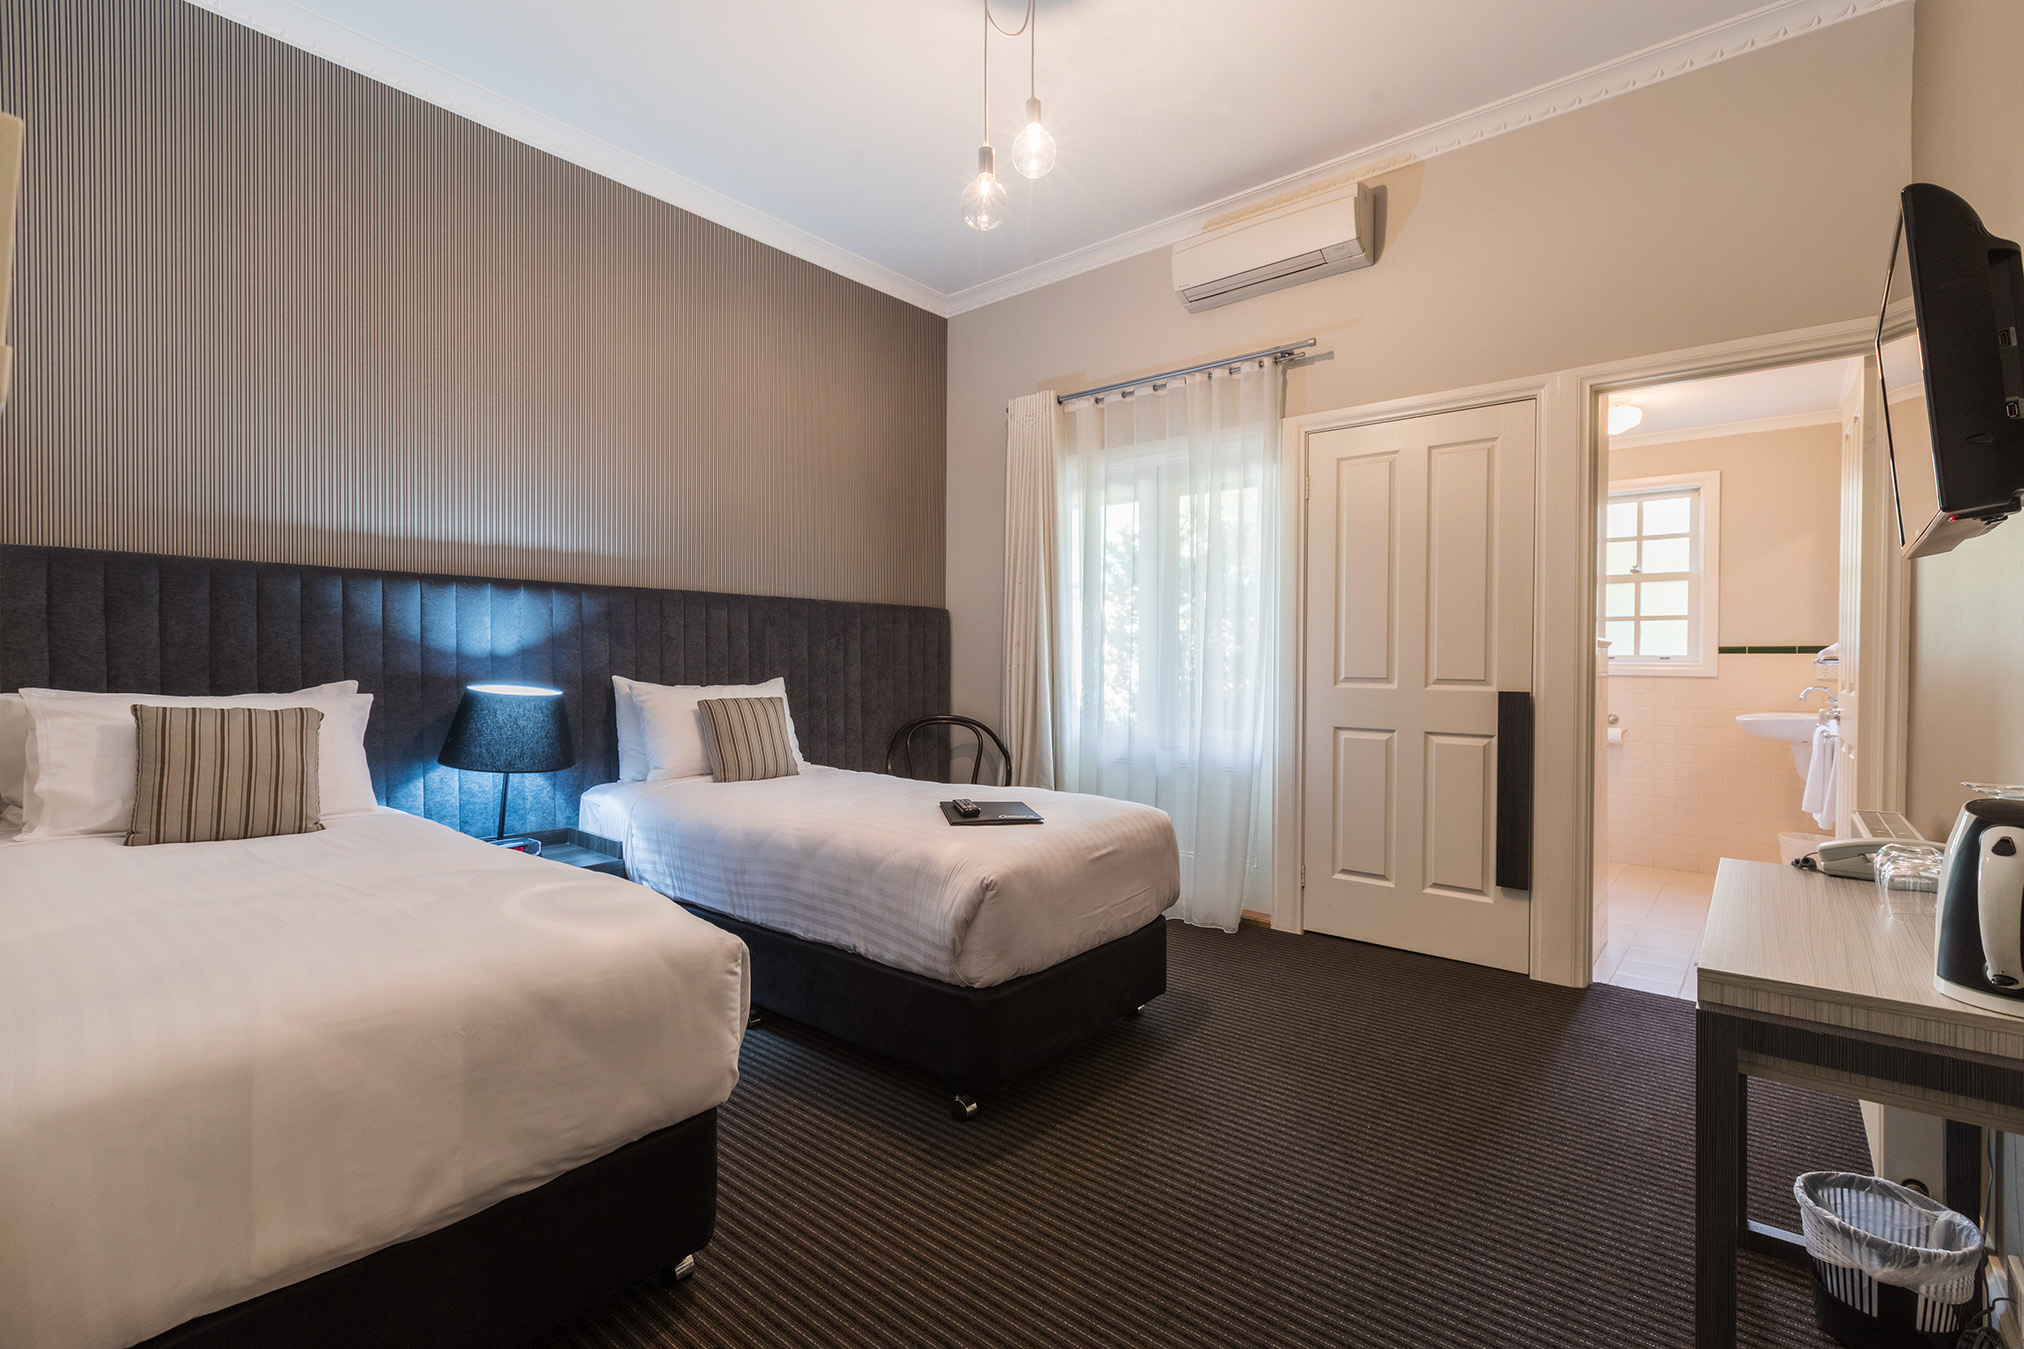 Customised Rooms - We regularly customise our Guest Rooms to suit our guests, such as transforming our comfy King beds into Twin accommodation, and adding additional singles in our larger rooms where more than two need accommodating.Talk to us about your needs and we'll do all we can to make your stay at Oscars on the Yarra a delightful, comfortable and memorable experience you will be keen to enjoy again and again.